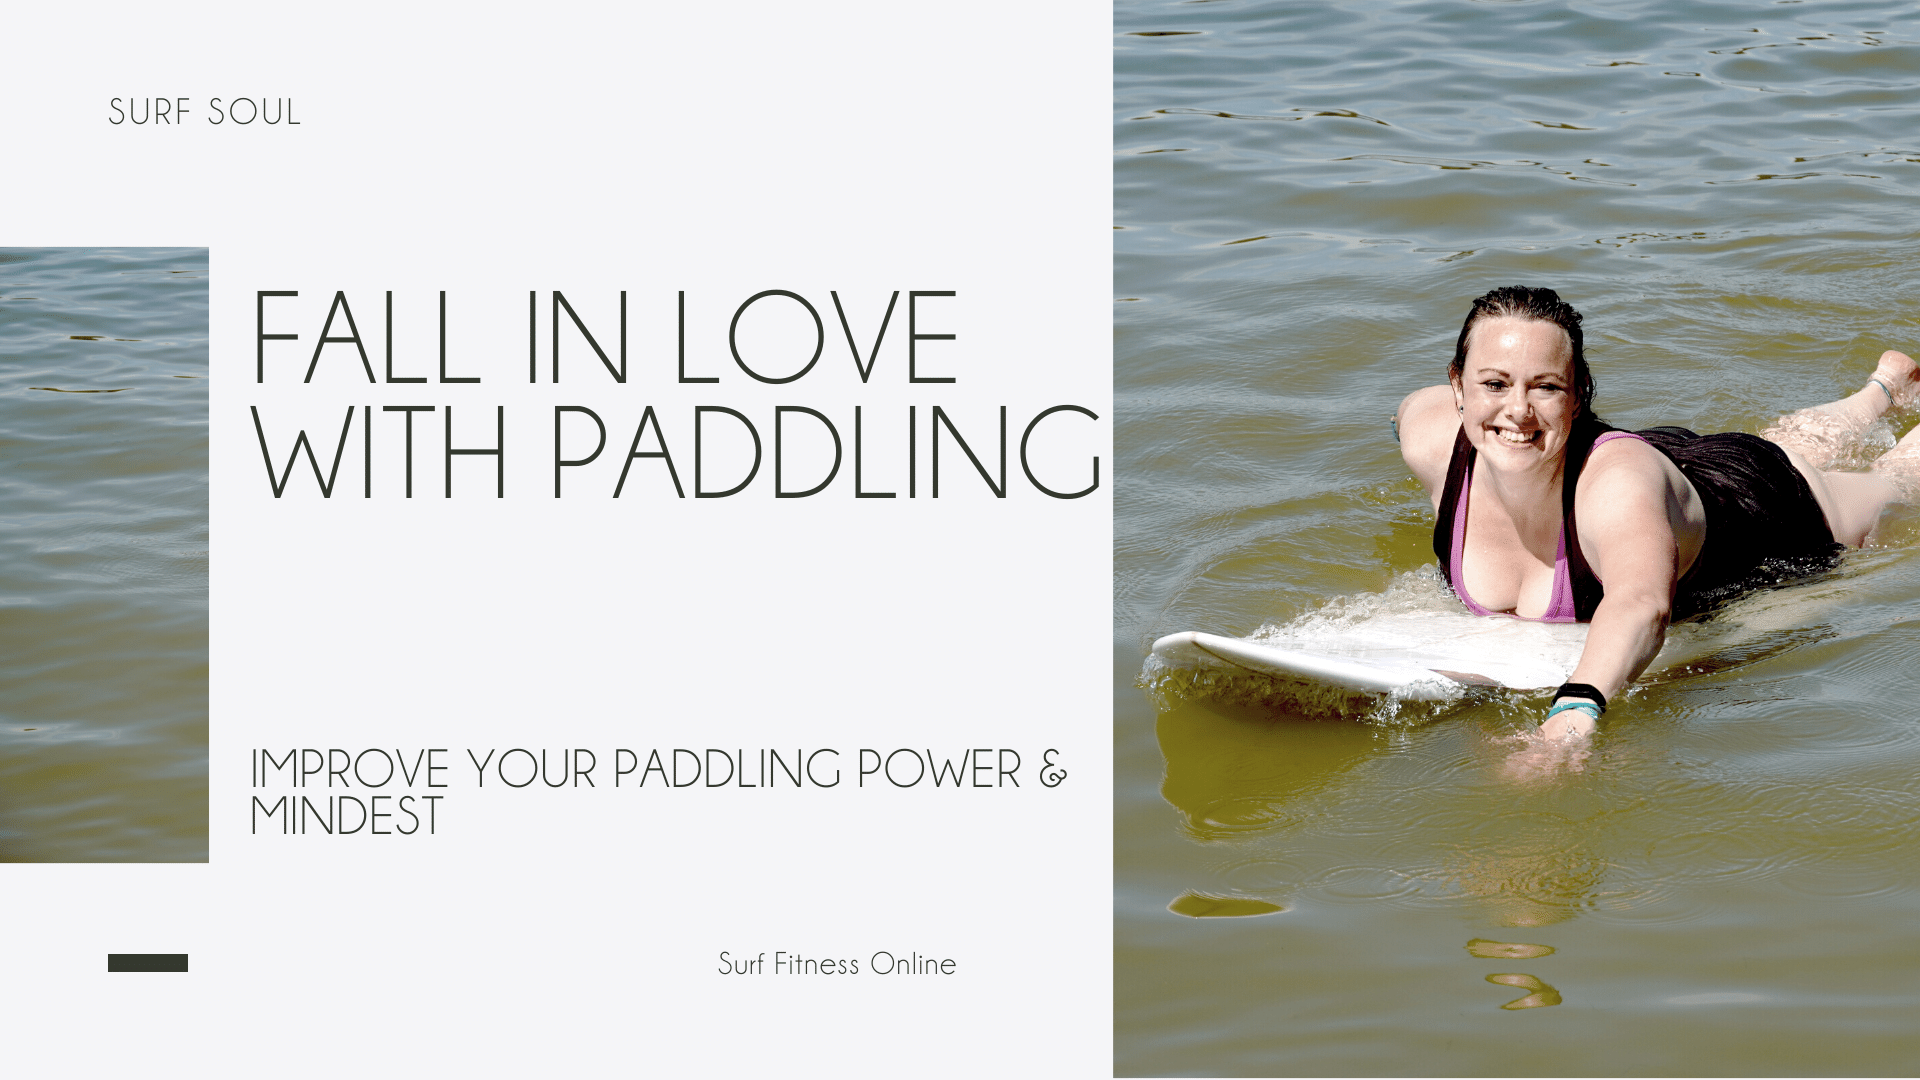 Fall in love with paddling